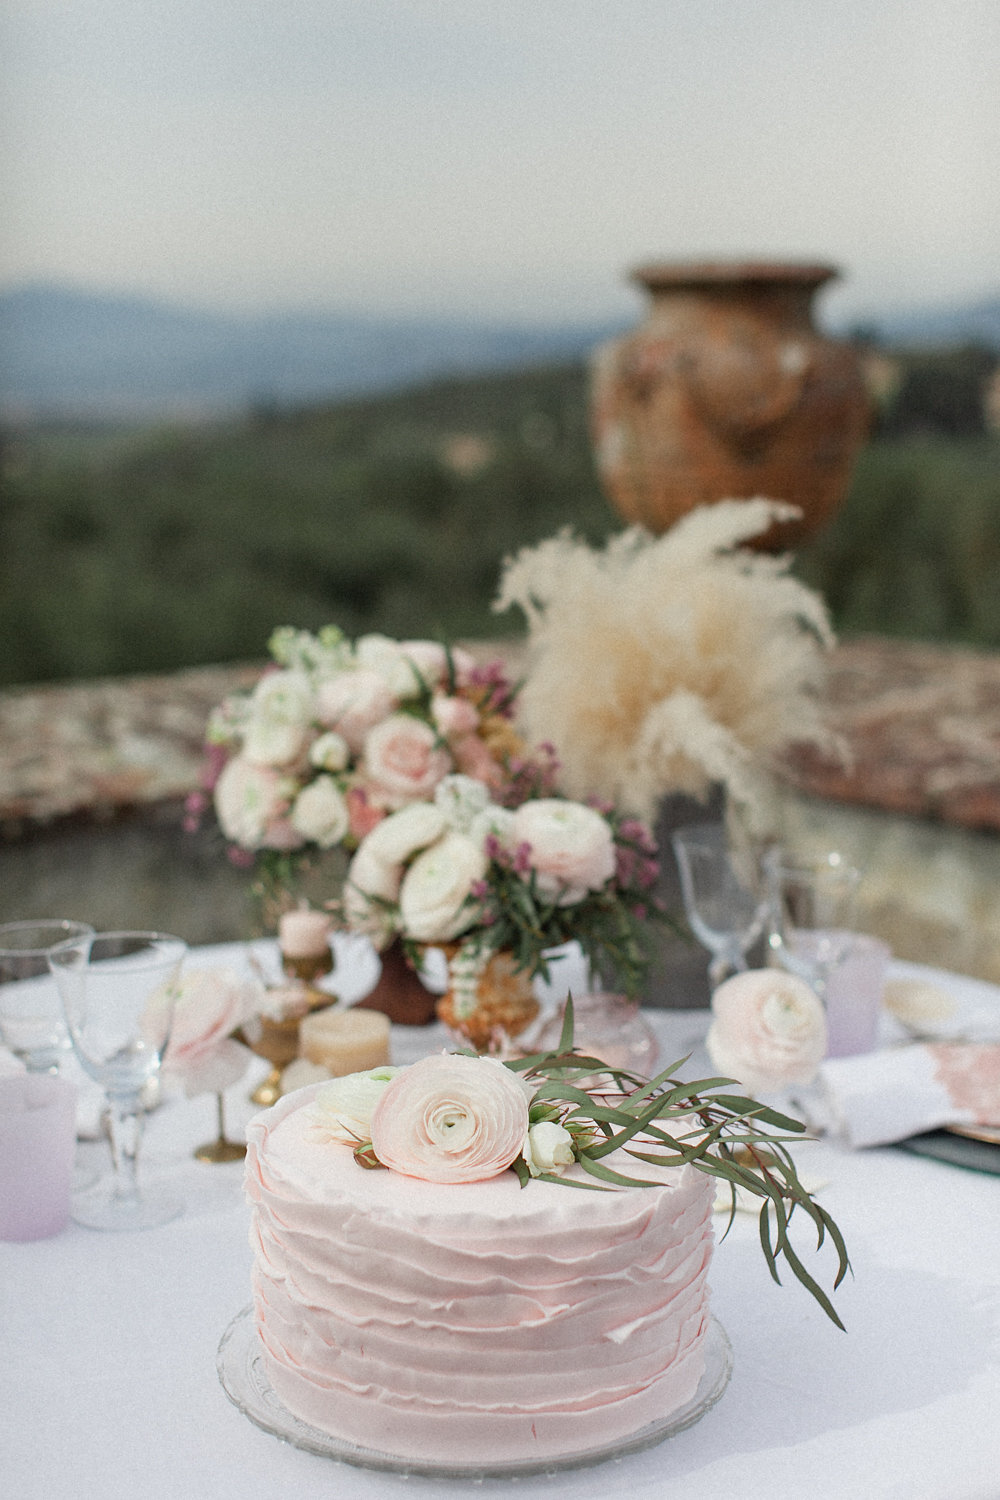 Tuscany Italy Wedding Photographer Roberta Facchini 337